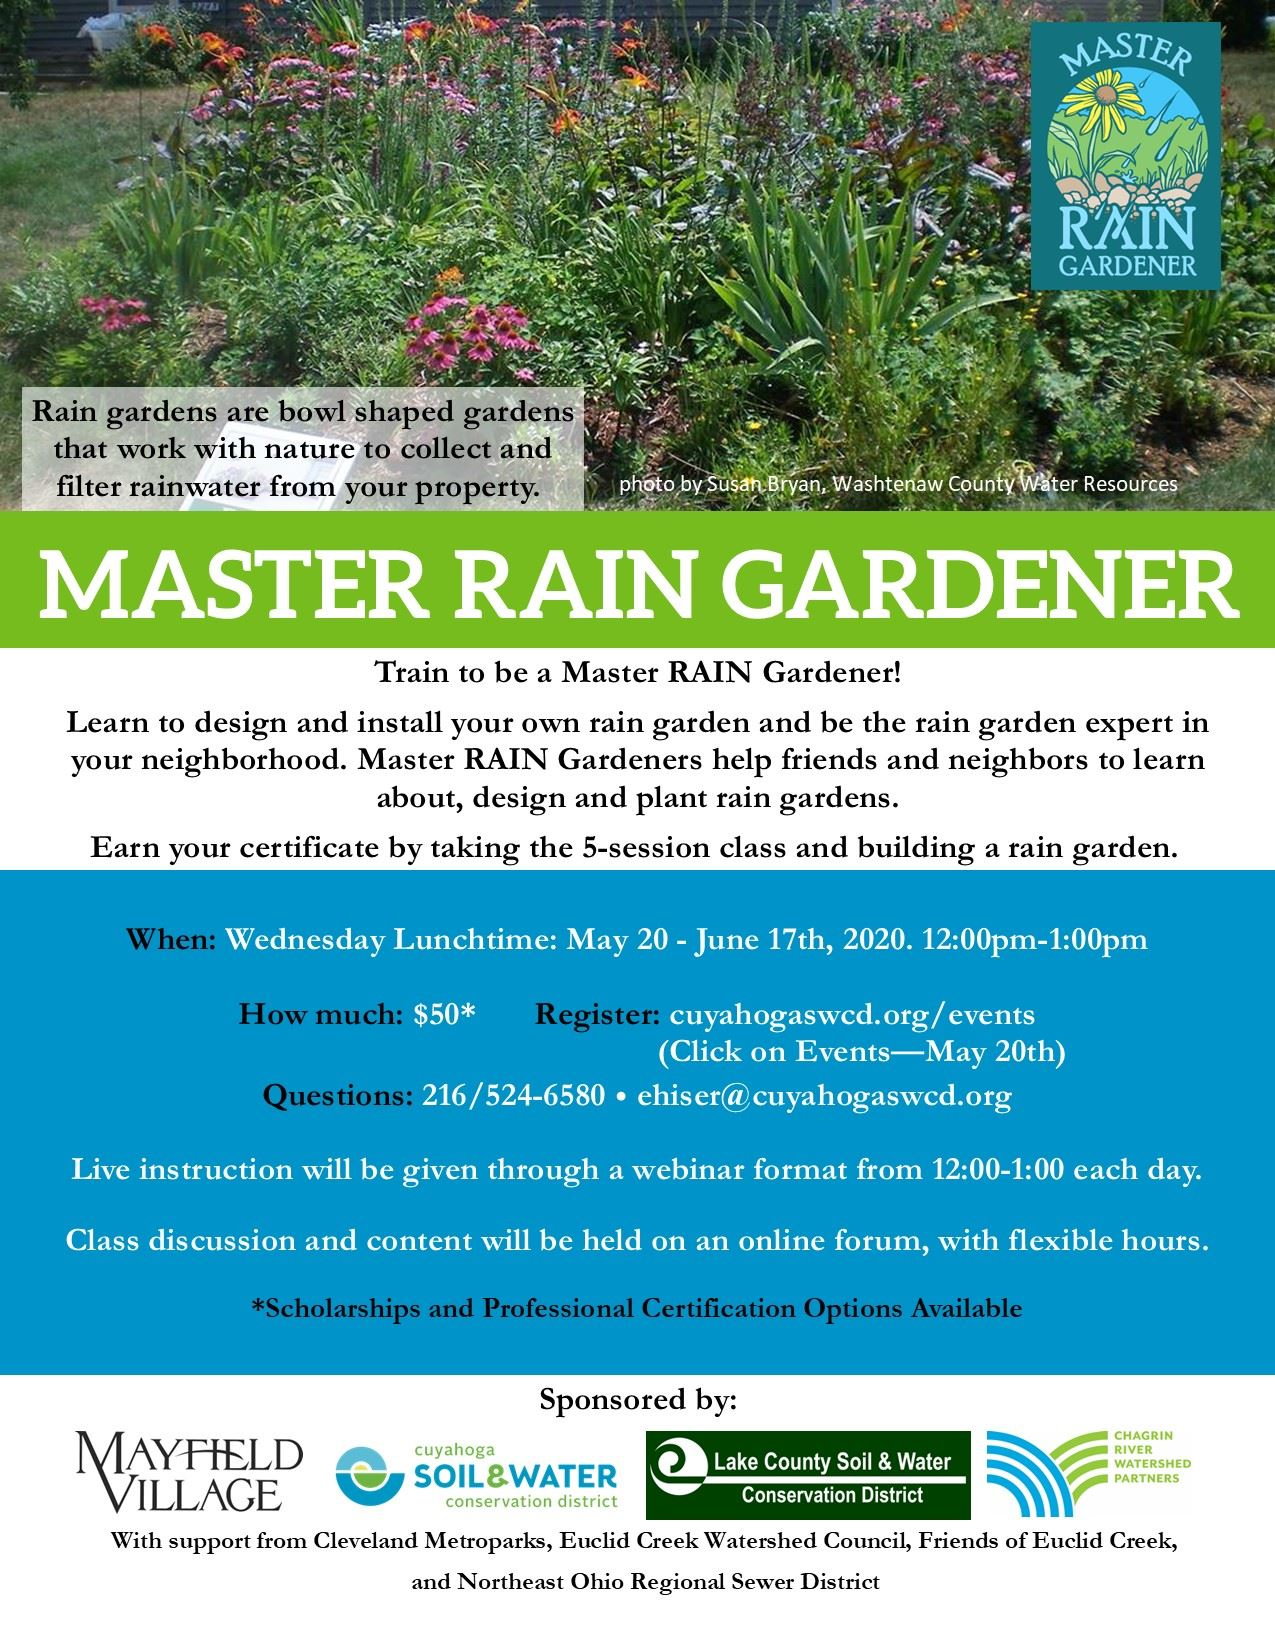 Master Rain Gardener Program Opens in new window